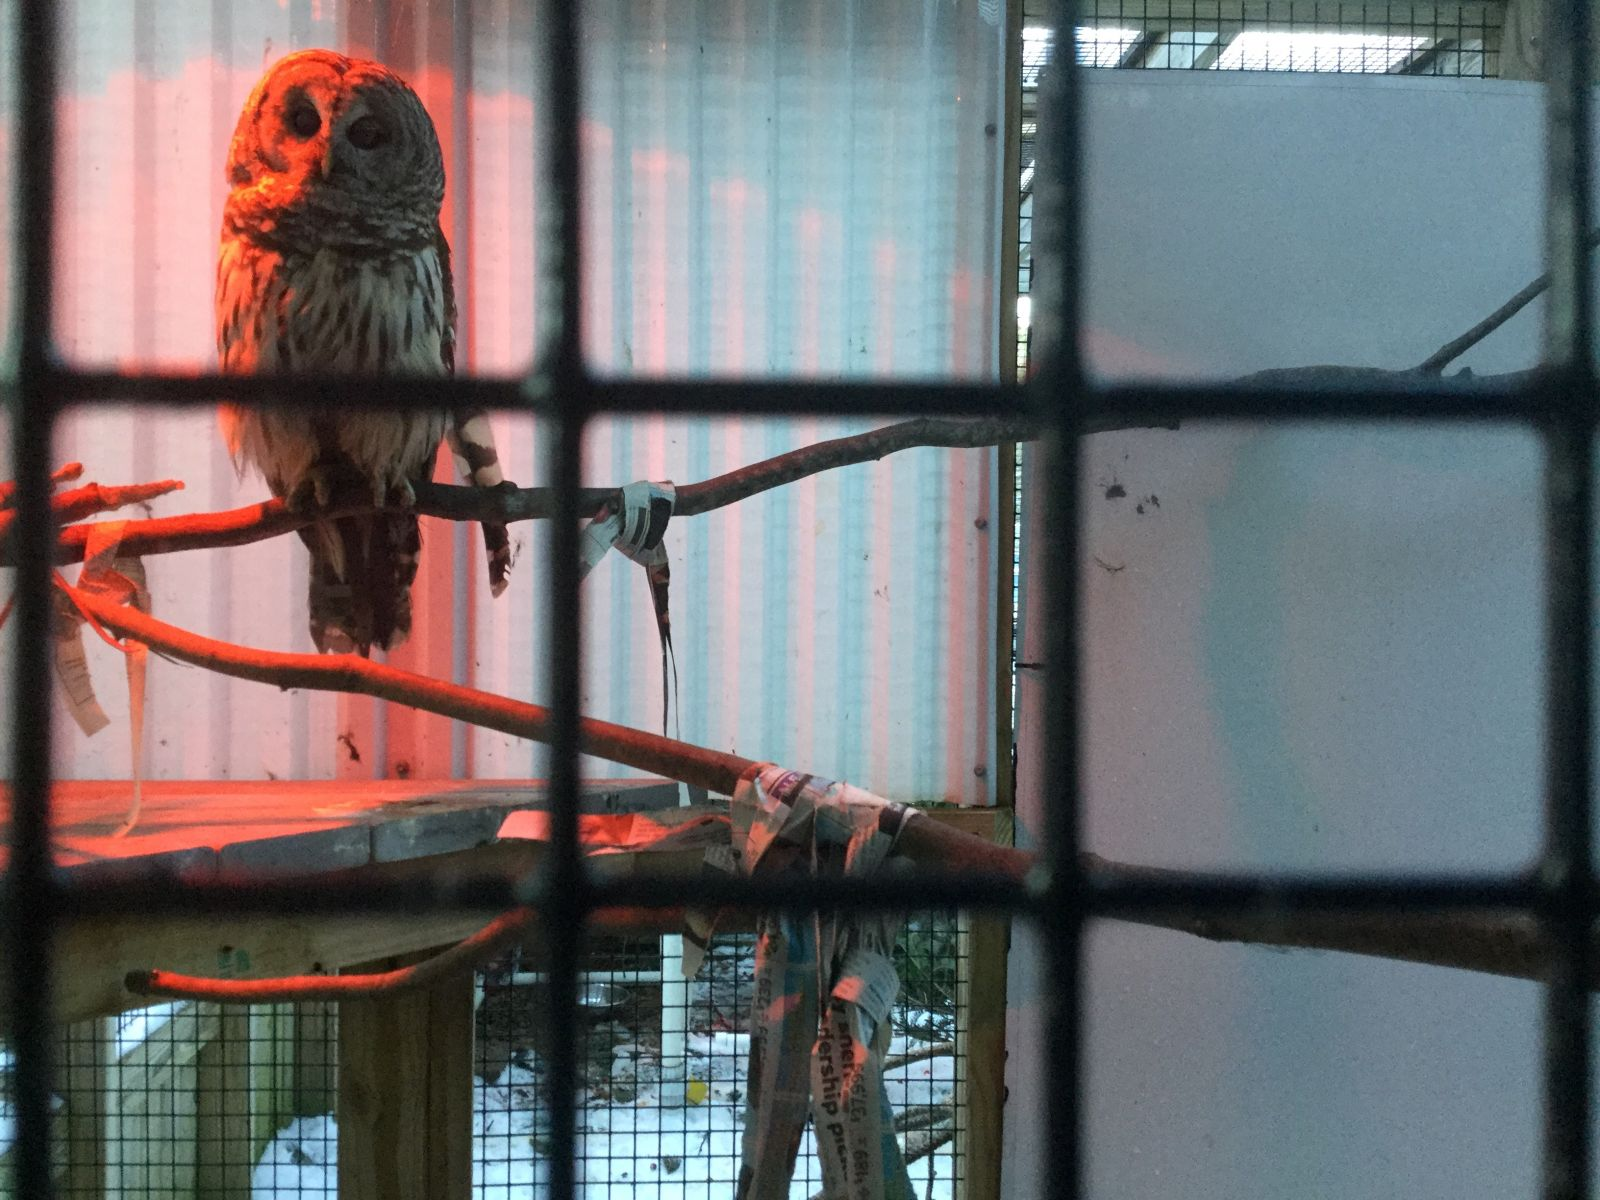 When it gets too cold for the heat lamp to keep this owl warm, they will come inside.